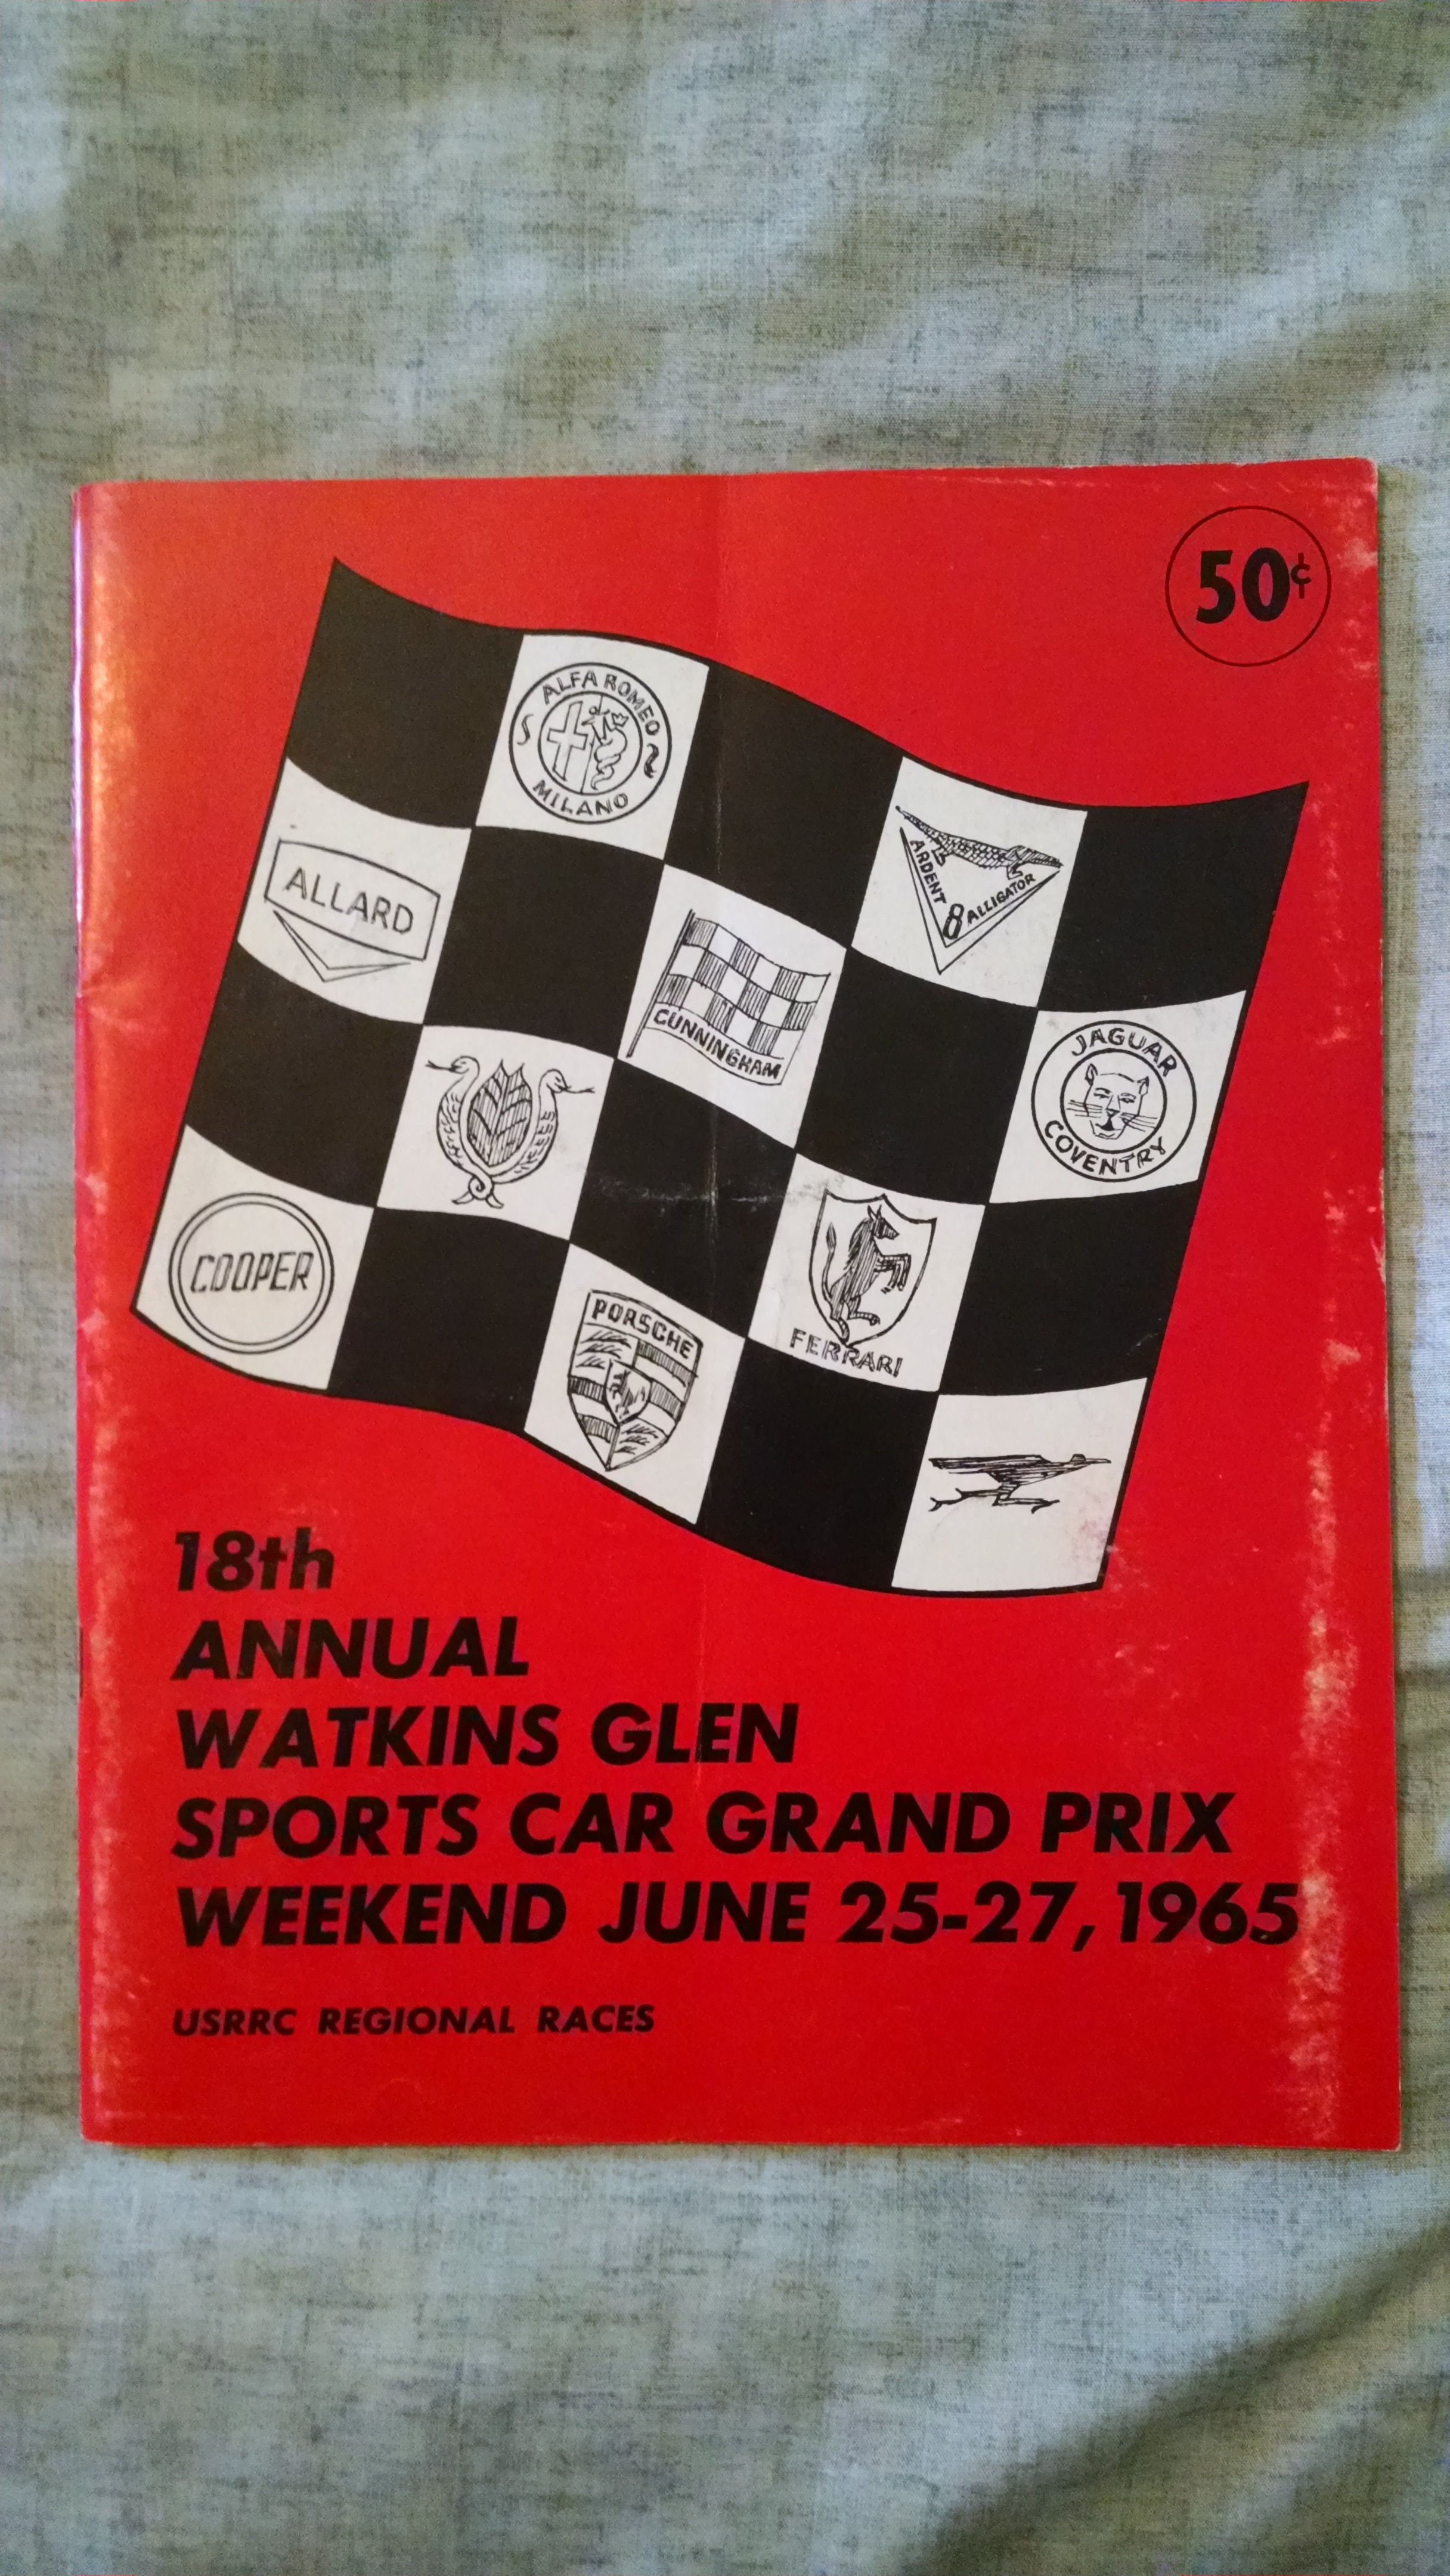 Image for 18 TH ANNUAL WATKINS GLEN SPORTS CAR GEAND PRIX WEEKEND JUNE 25-27 1965